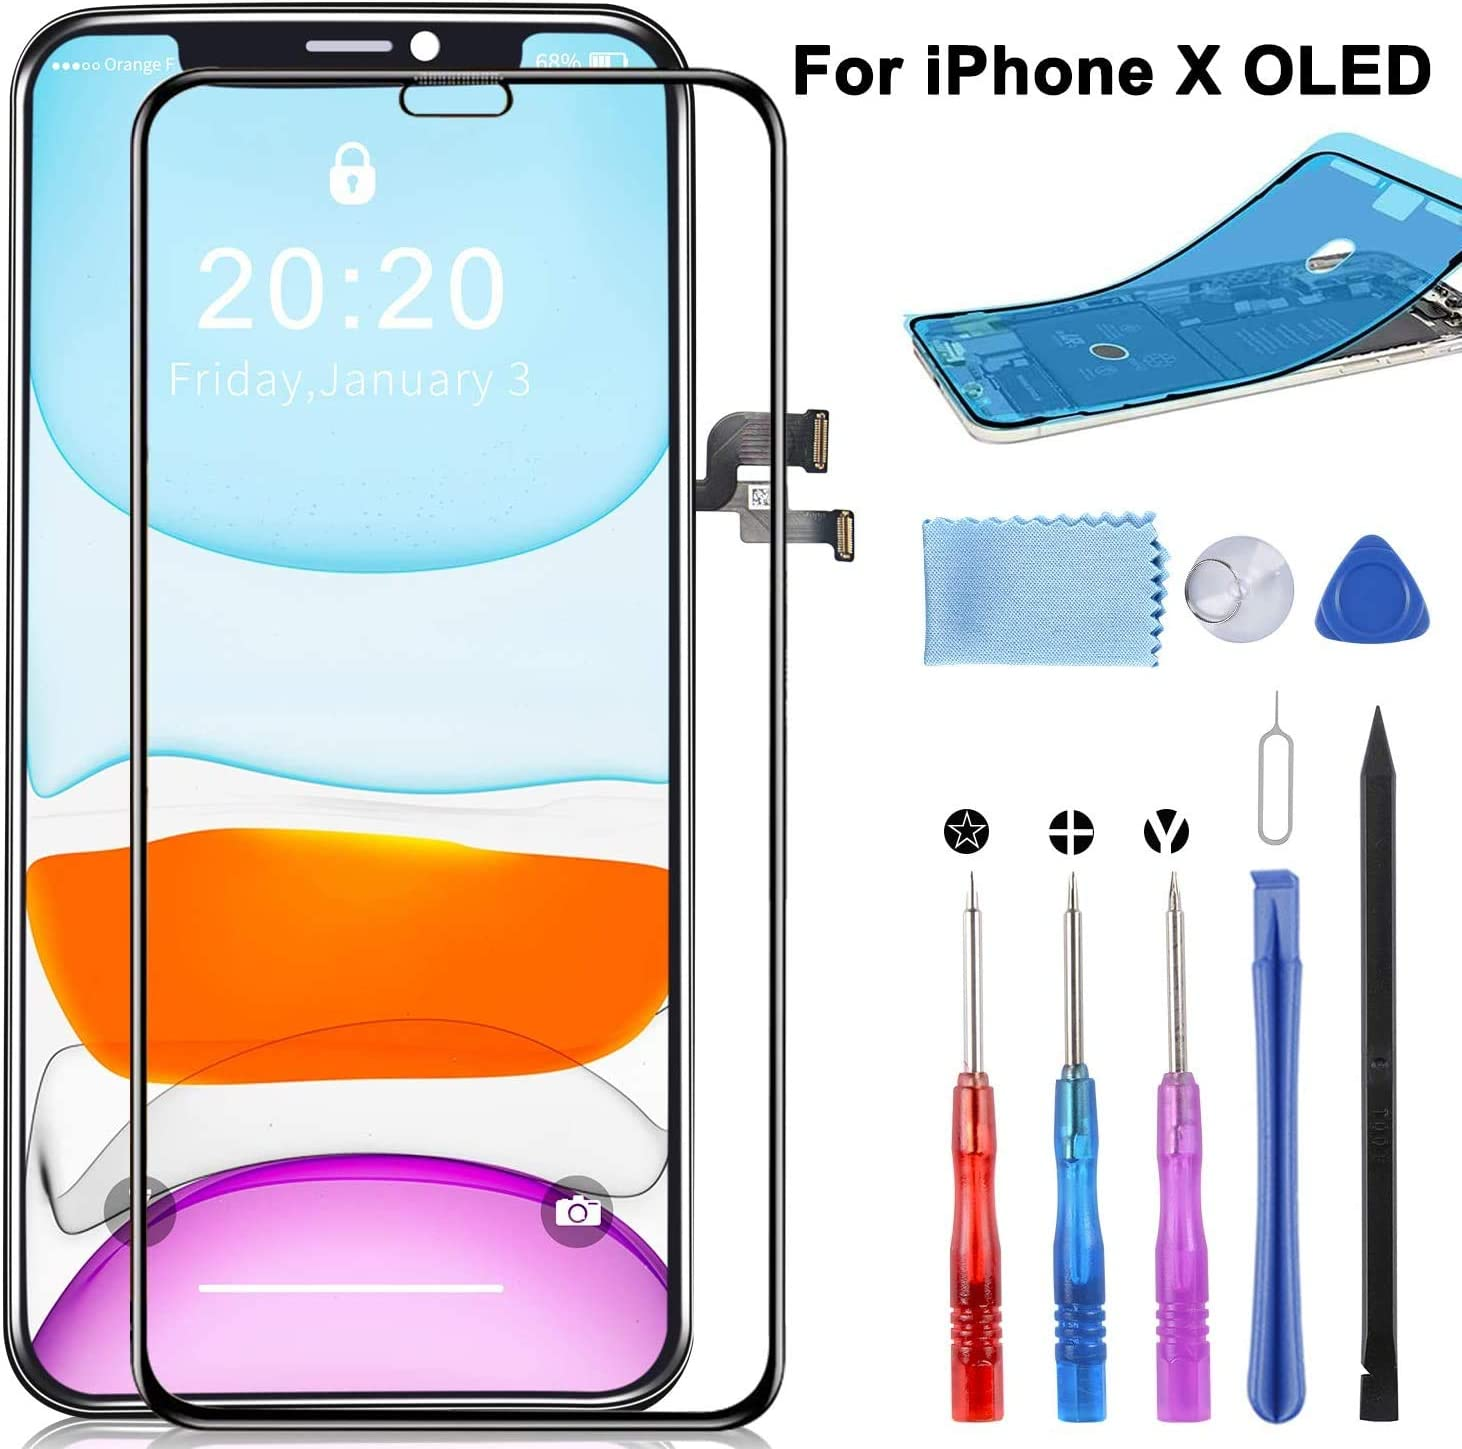 NOT LCD YPLANG Screen Replacement for iPhone X Screen Replacement OLED Display 3D Touch Digitizer Frame Assembly Full Repair Kit